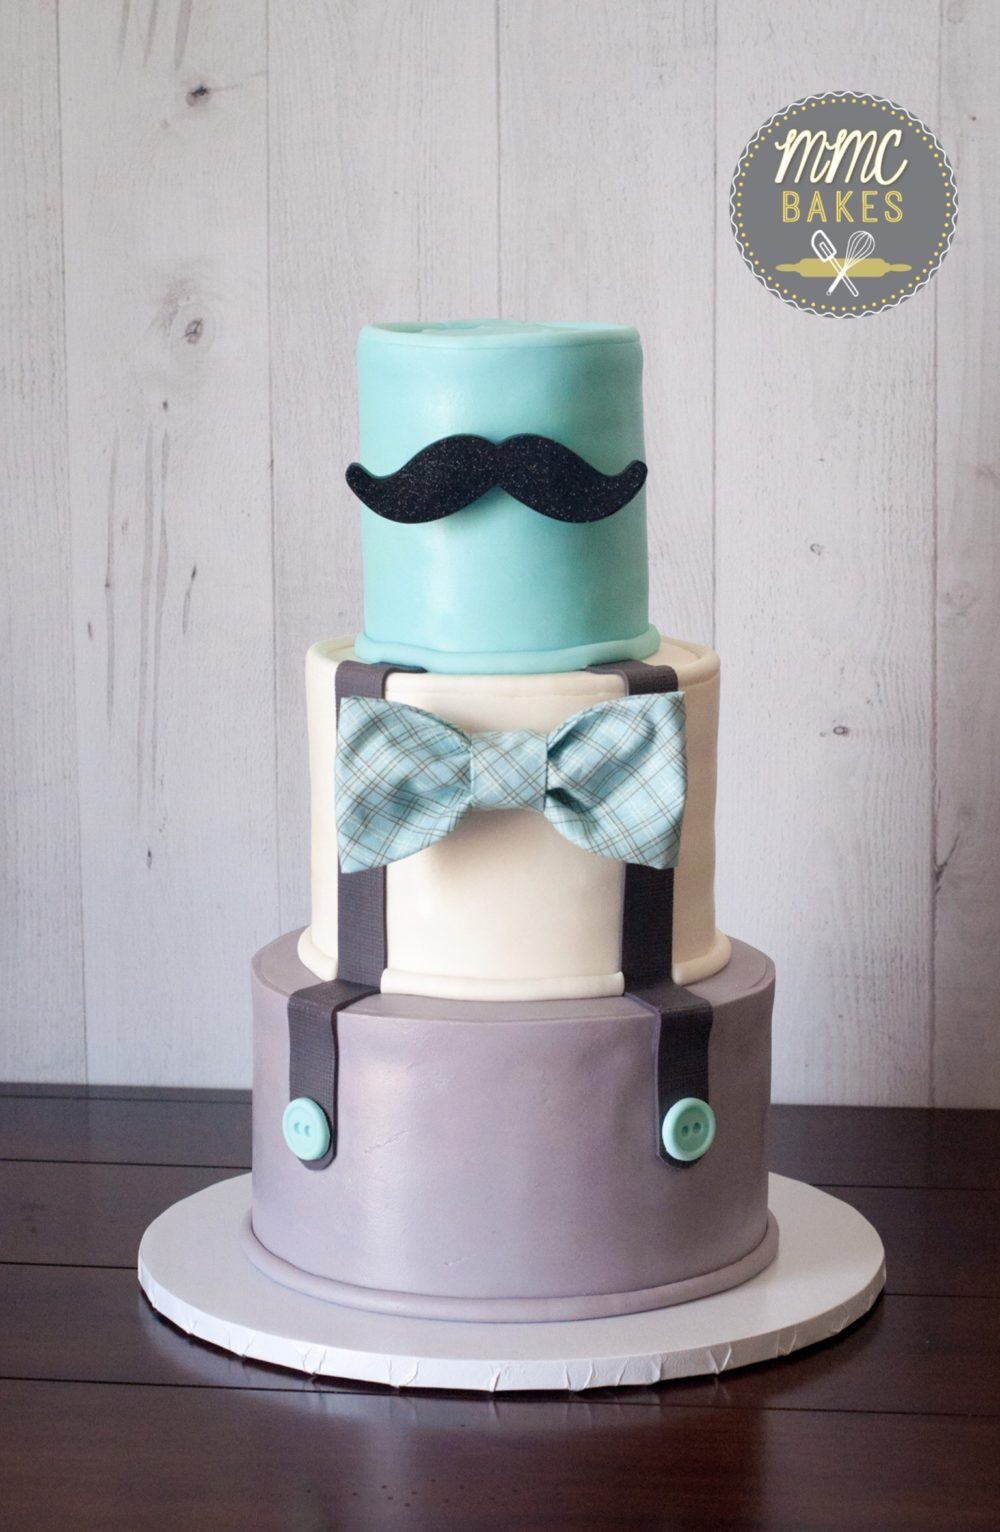 little man cake, mr. onederful, bow tie, plaid, baby blue, mustache cake, baby shower cake, fondant, custom cake, san diego, chula vista, custom cake, fondant, mustache, baby shower, three tier, mustache cake, mmc bakes,